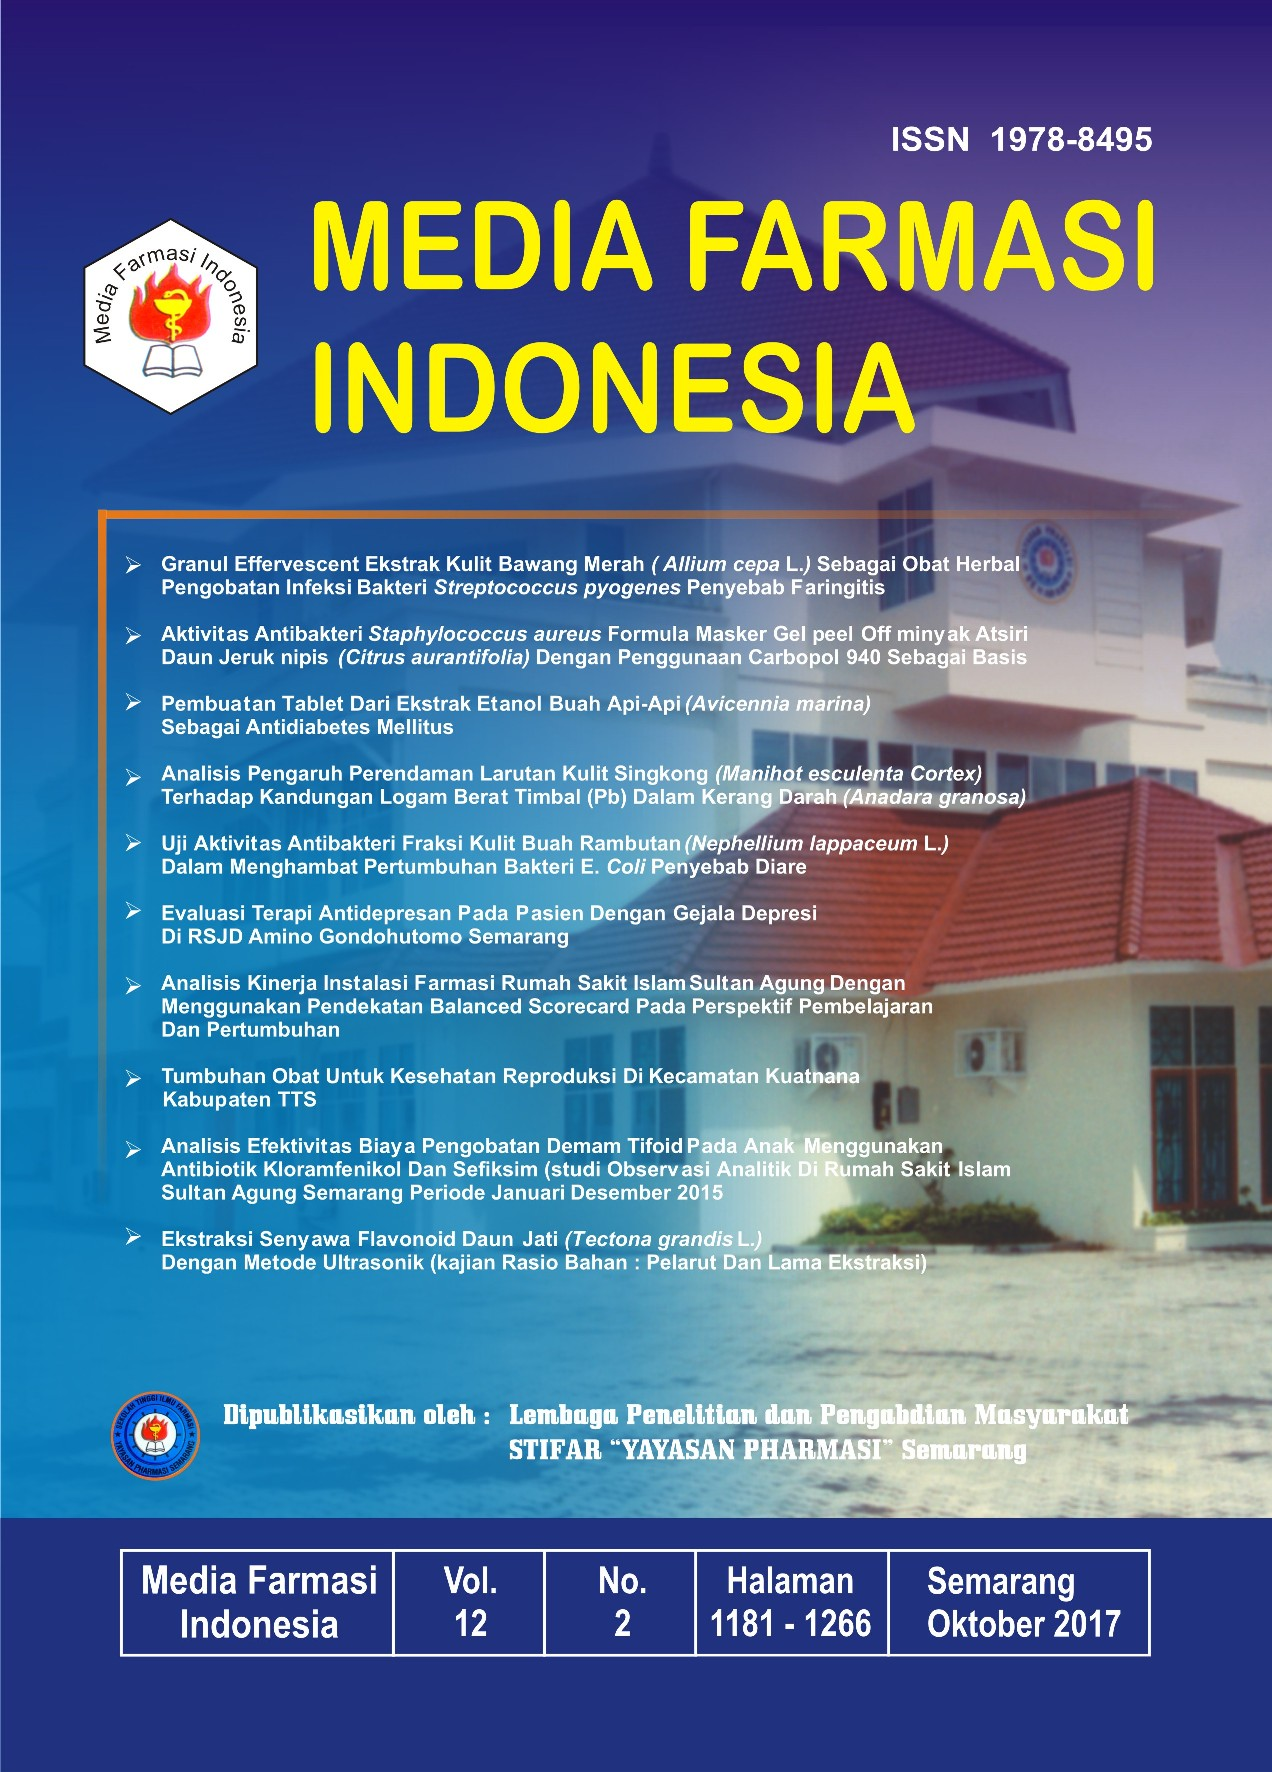 Media Farmasi Indonesia Volume 12 Nomor 2